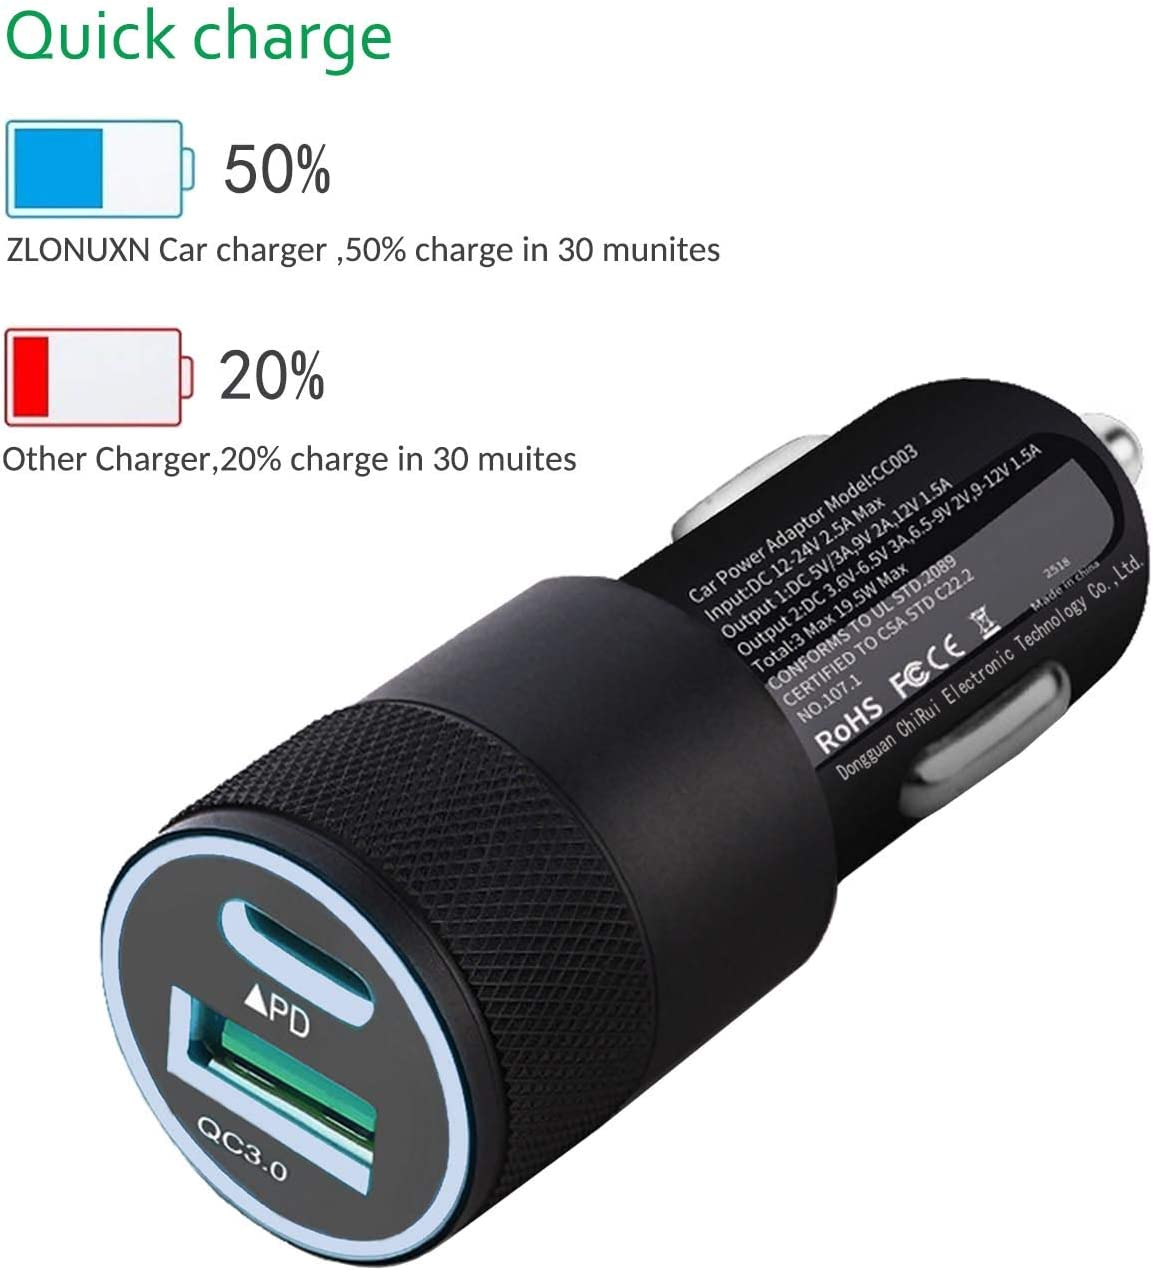 C to C Cable for Google Pixel 4//3//2 XL//3A XL//2XL//3XL//4XL,LG G7//G6//V20//V30,Moto G7 Series//G6//G6 Plus//Moto X4 Fast Car Charger with PD Port and USB Port